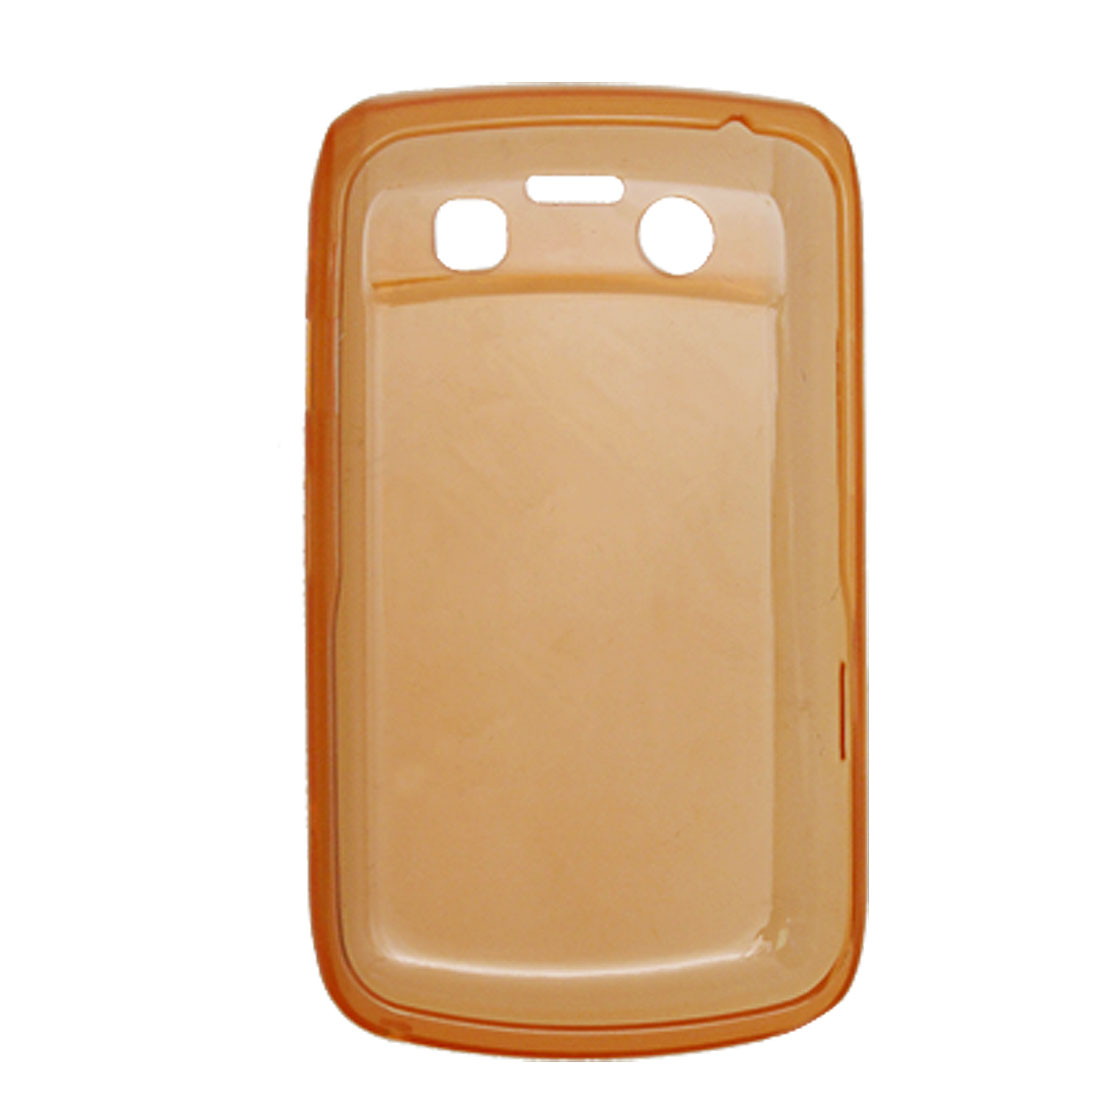 Mobile Orange Soft Plastic Shell Cover for BlackBerry 9700